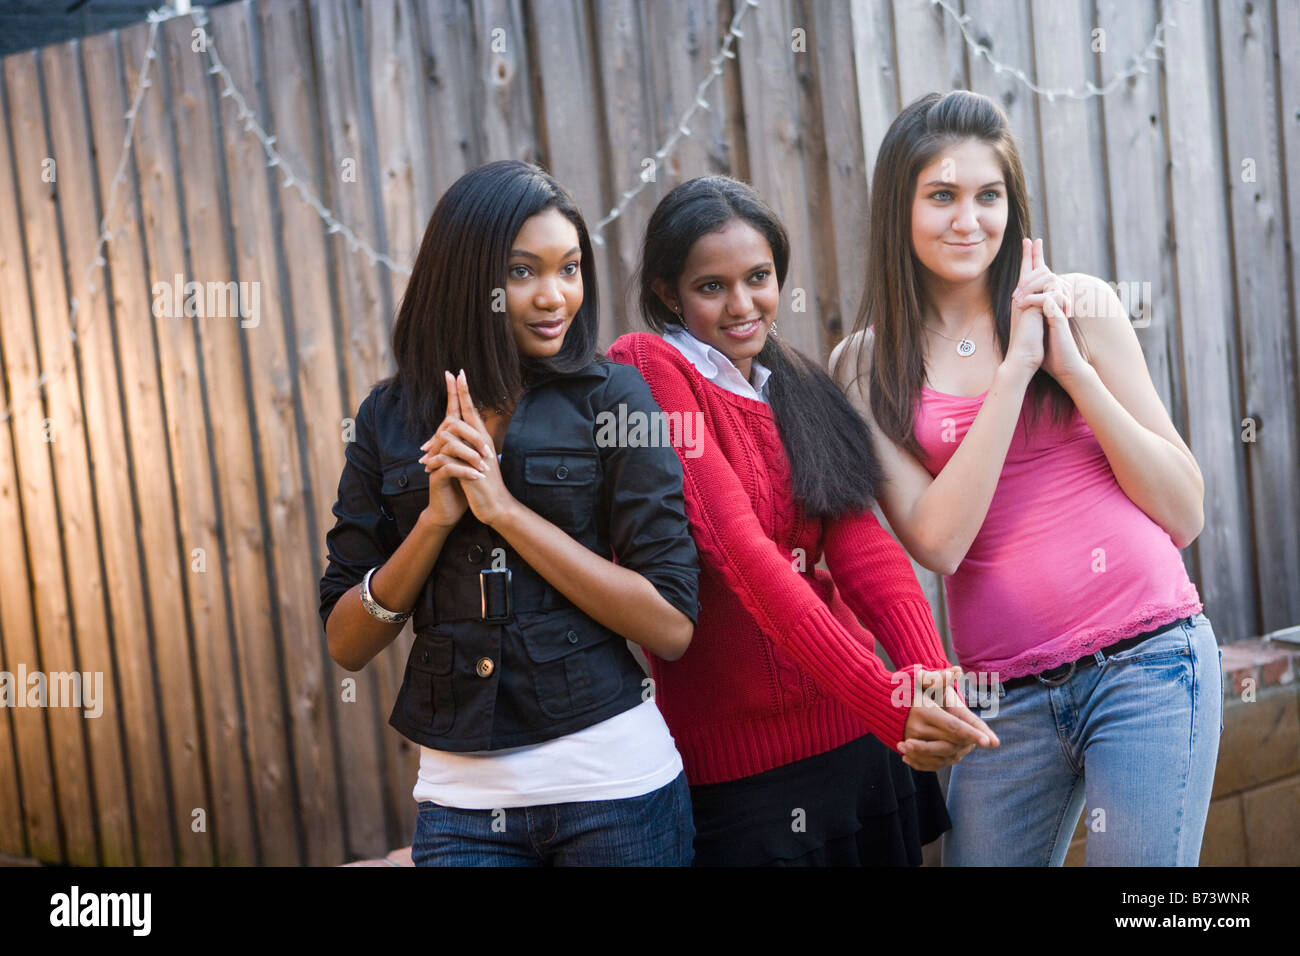 Three young multi-racial girlfriends posing - Stock Image